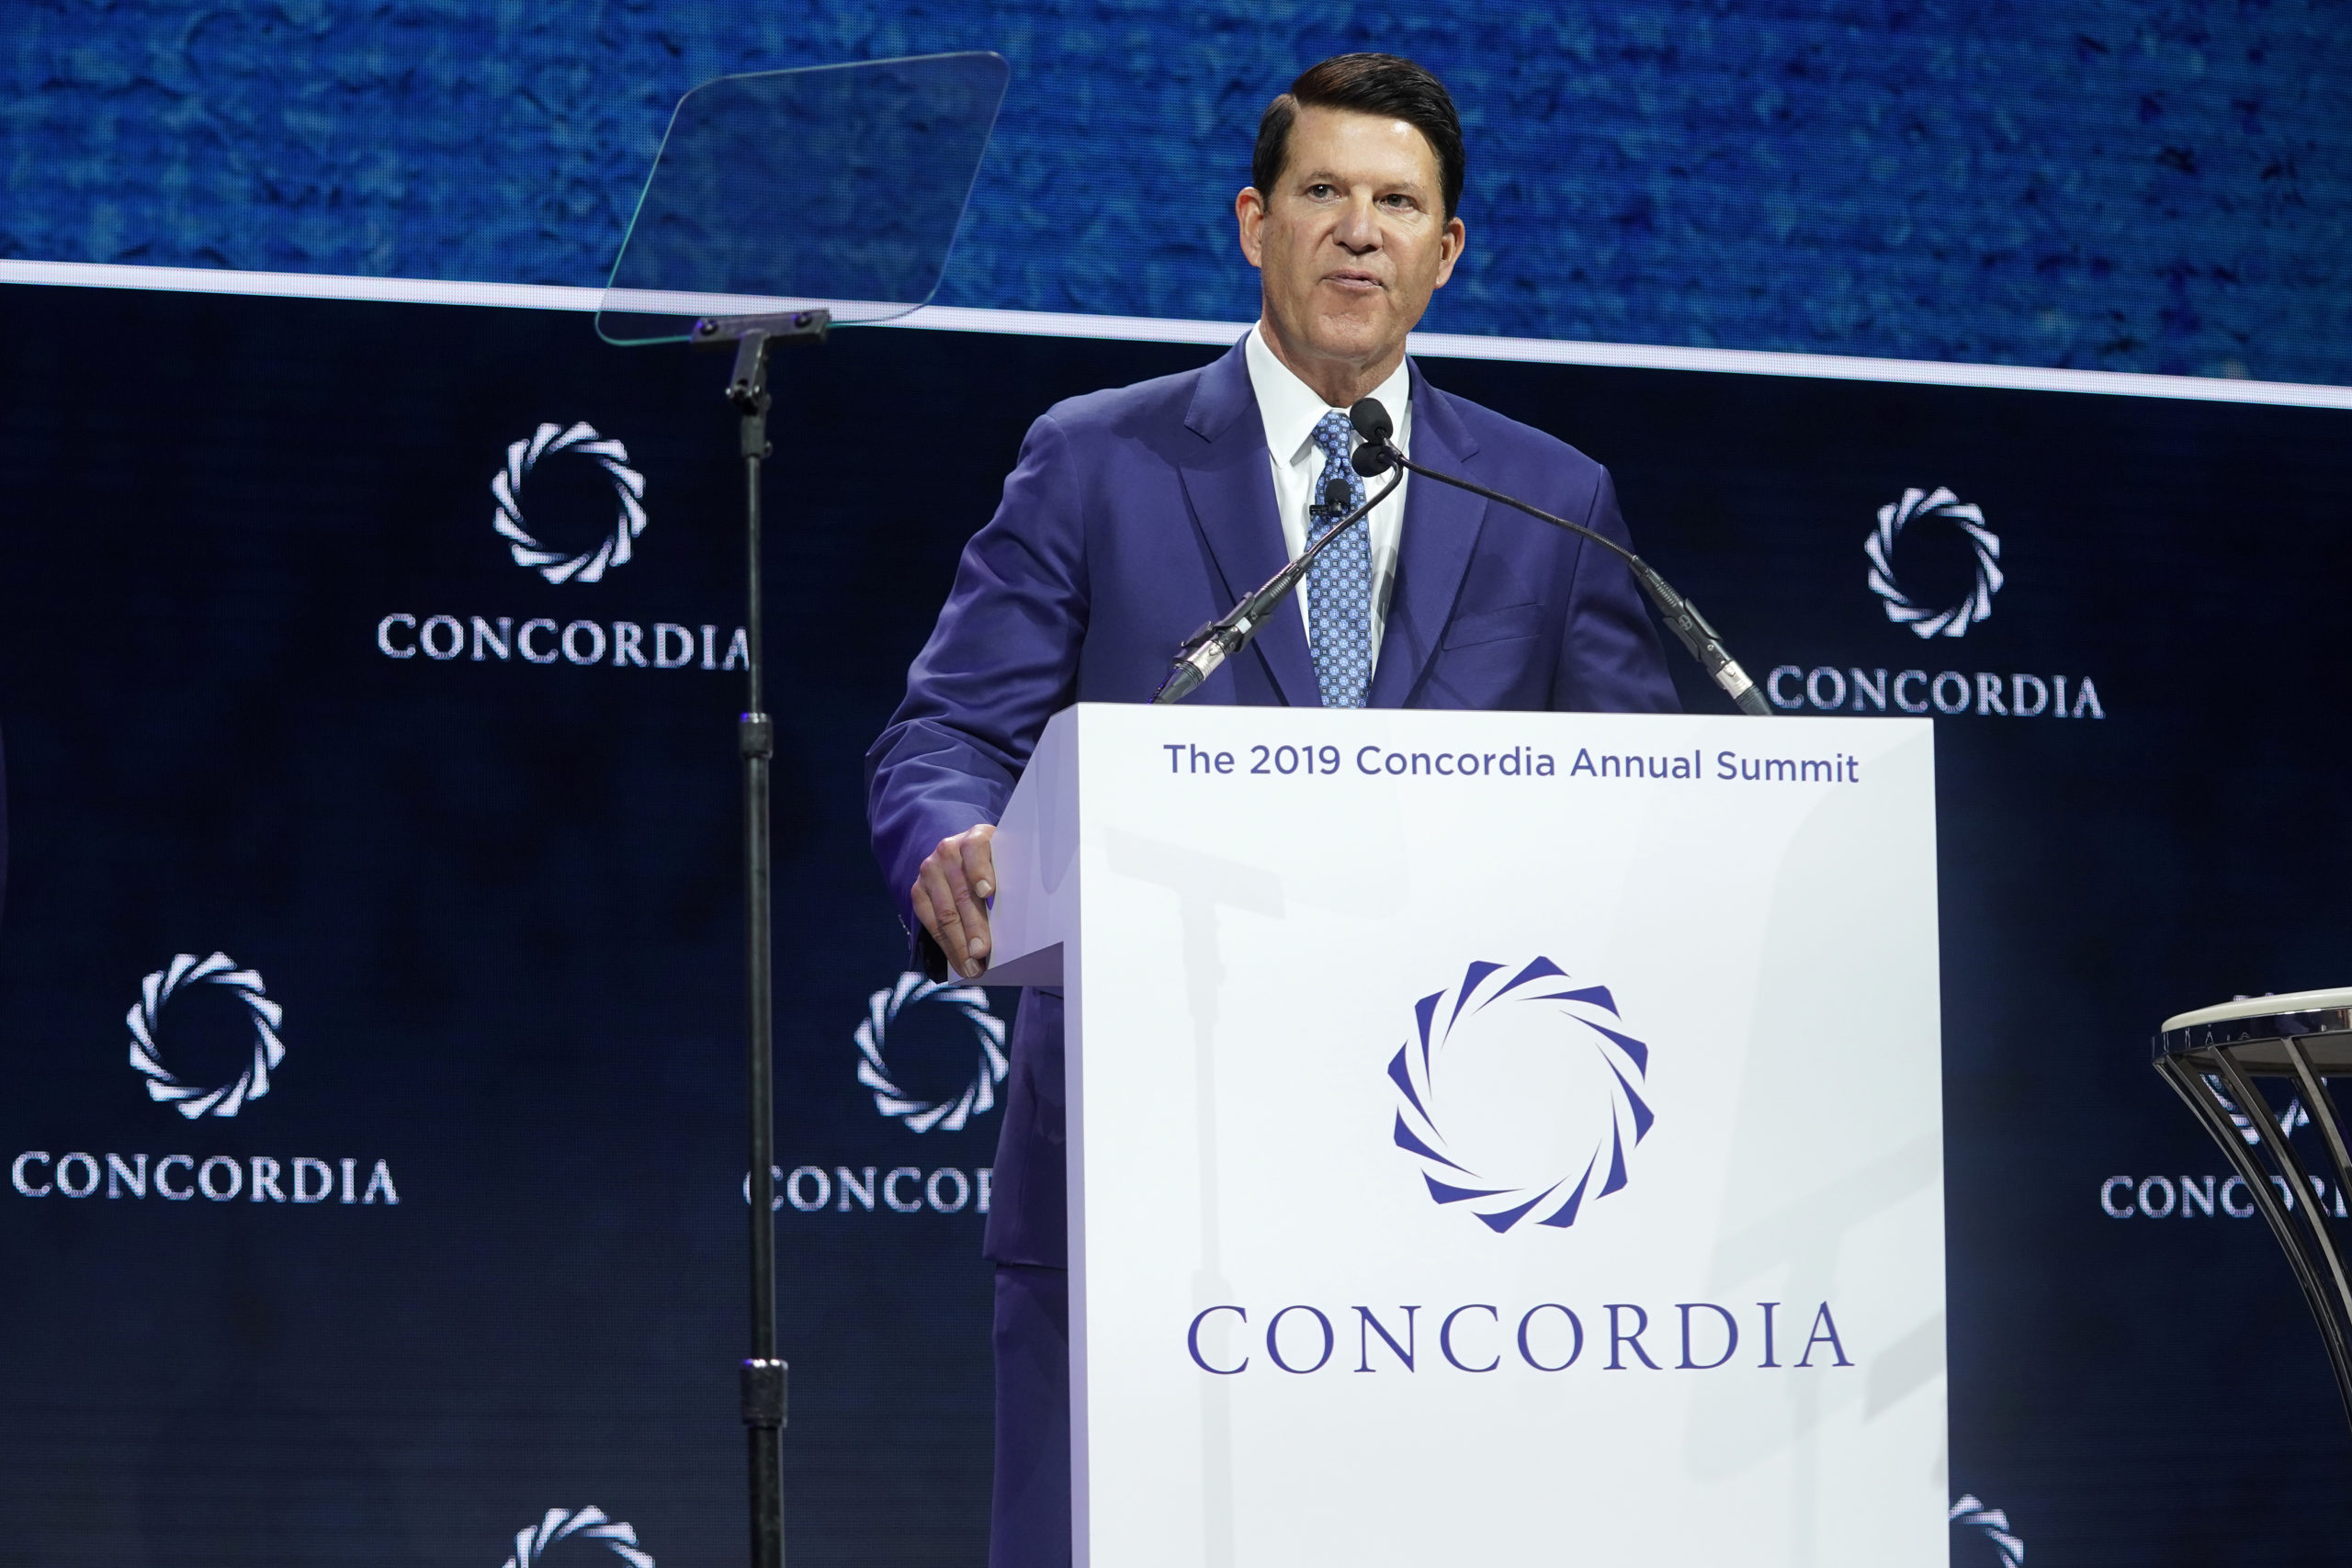 Keith Krach, Under Secretary For Economic Growth, Energy, and the Environment, U.S. Department Of State, speaks onstage during the 2019 Concordia Annual Summit. (Riccardo Savi/Getty Images for Concordia Summit)